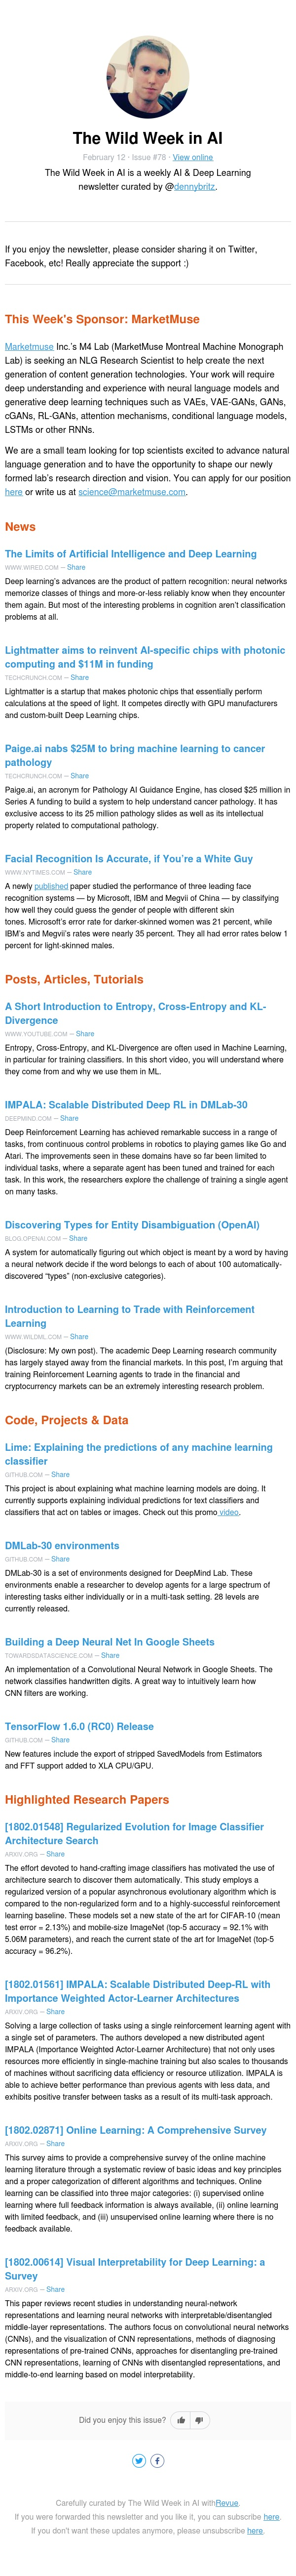 The Wild Week in AI - Limits of Deep Learning; DeepMind's IMPALA algorithm; Evolutionary architecture search